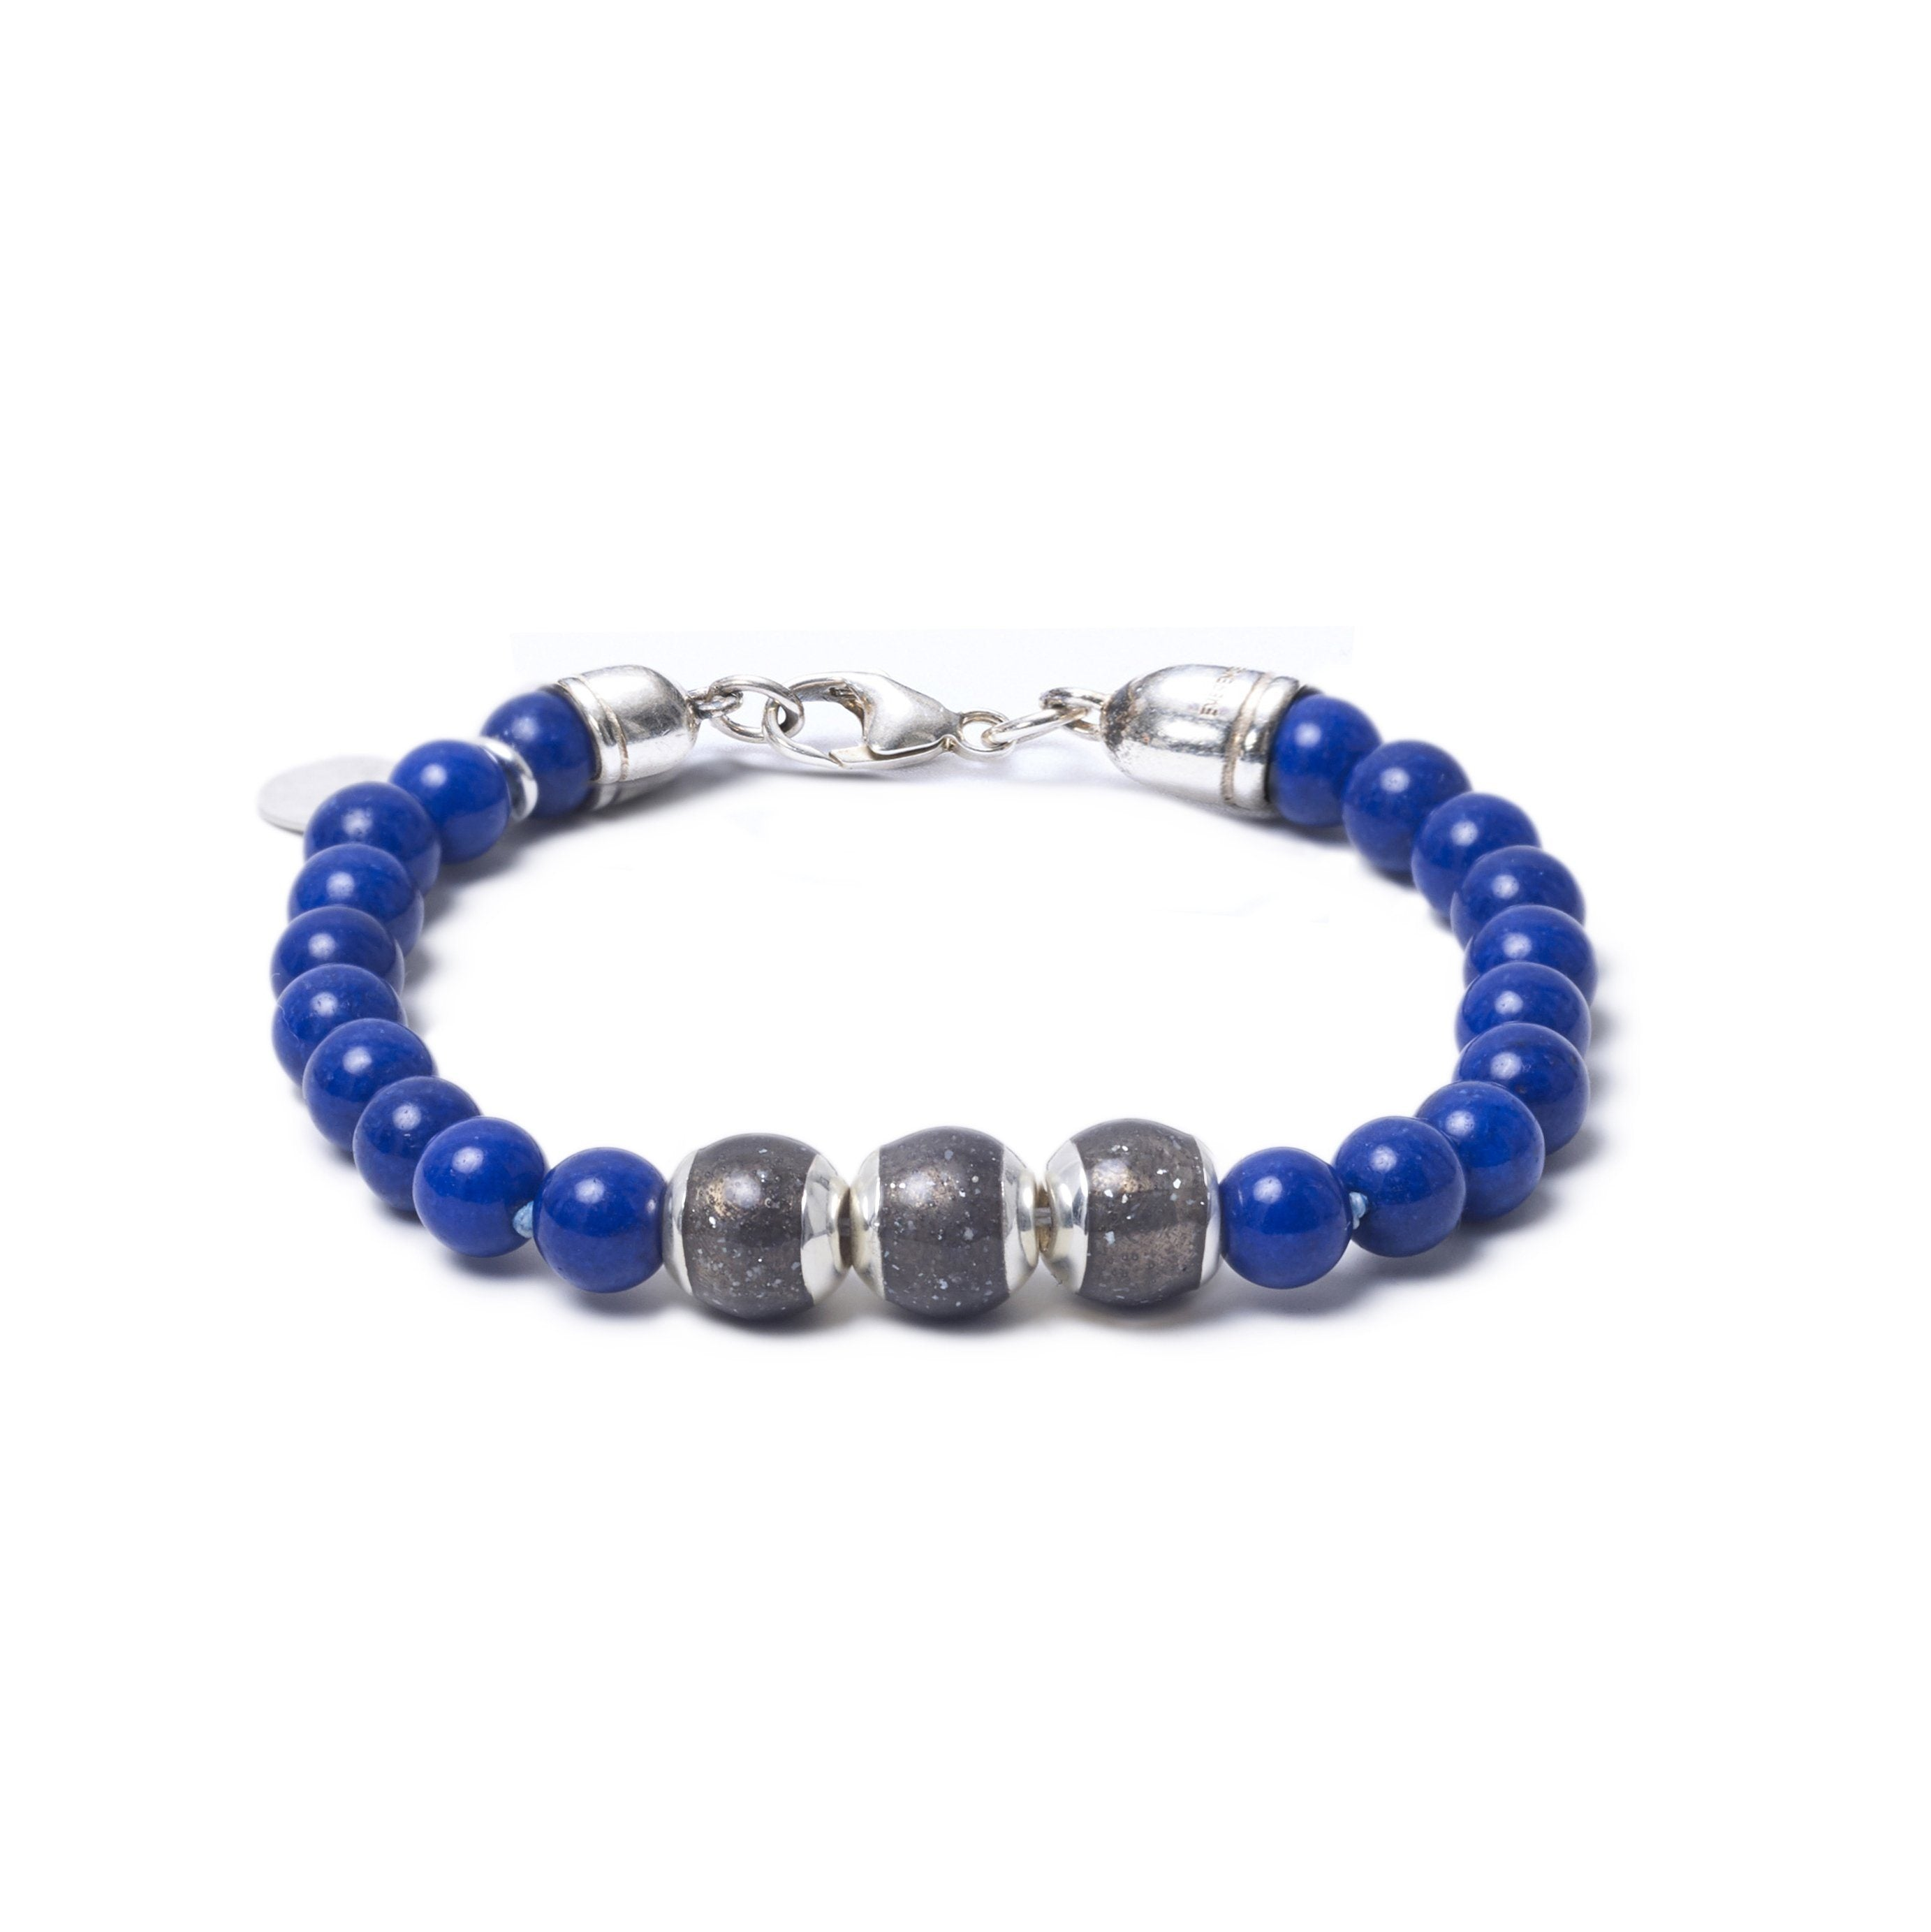 Lapis Lazuli, Three Everence Beads everence.life Grey Lobster Claw 7